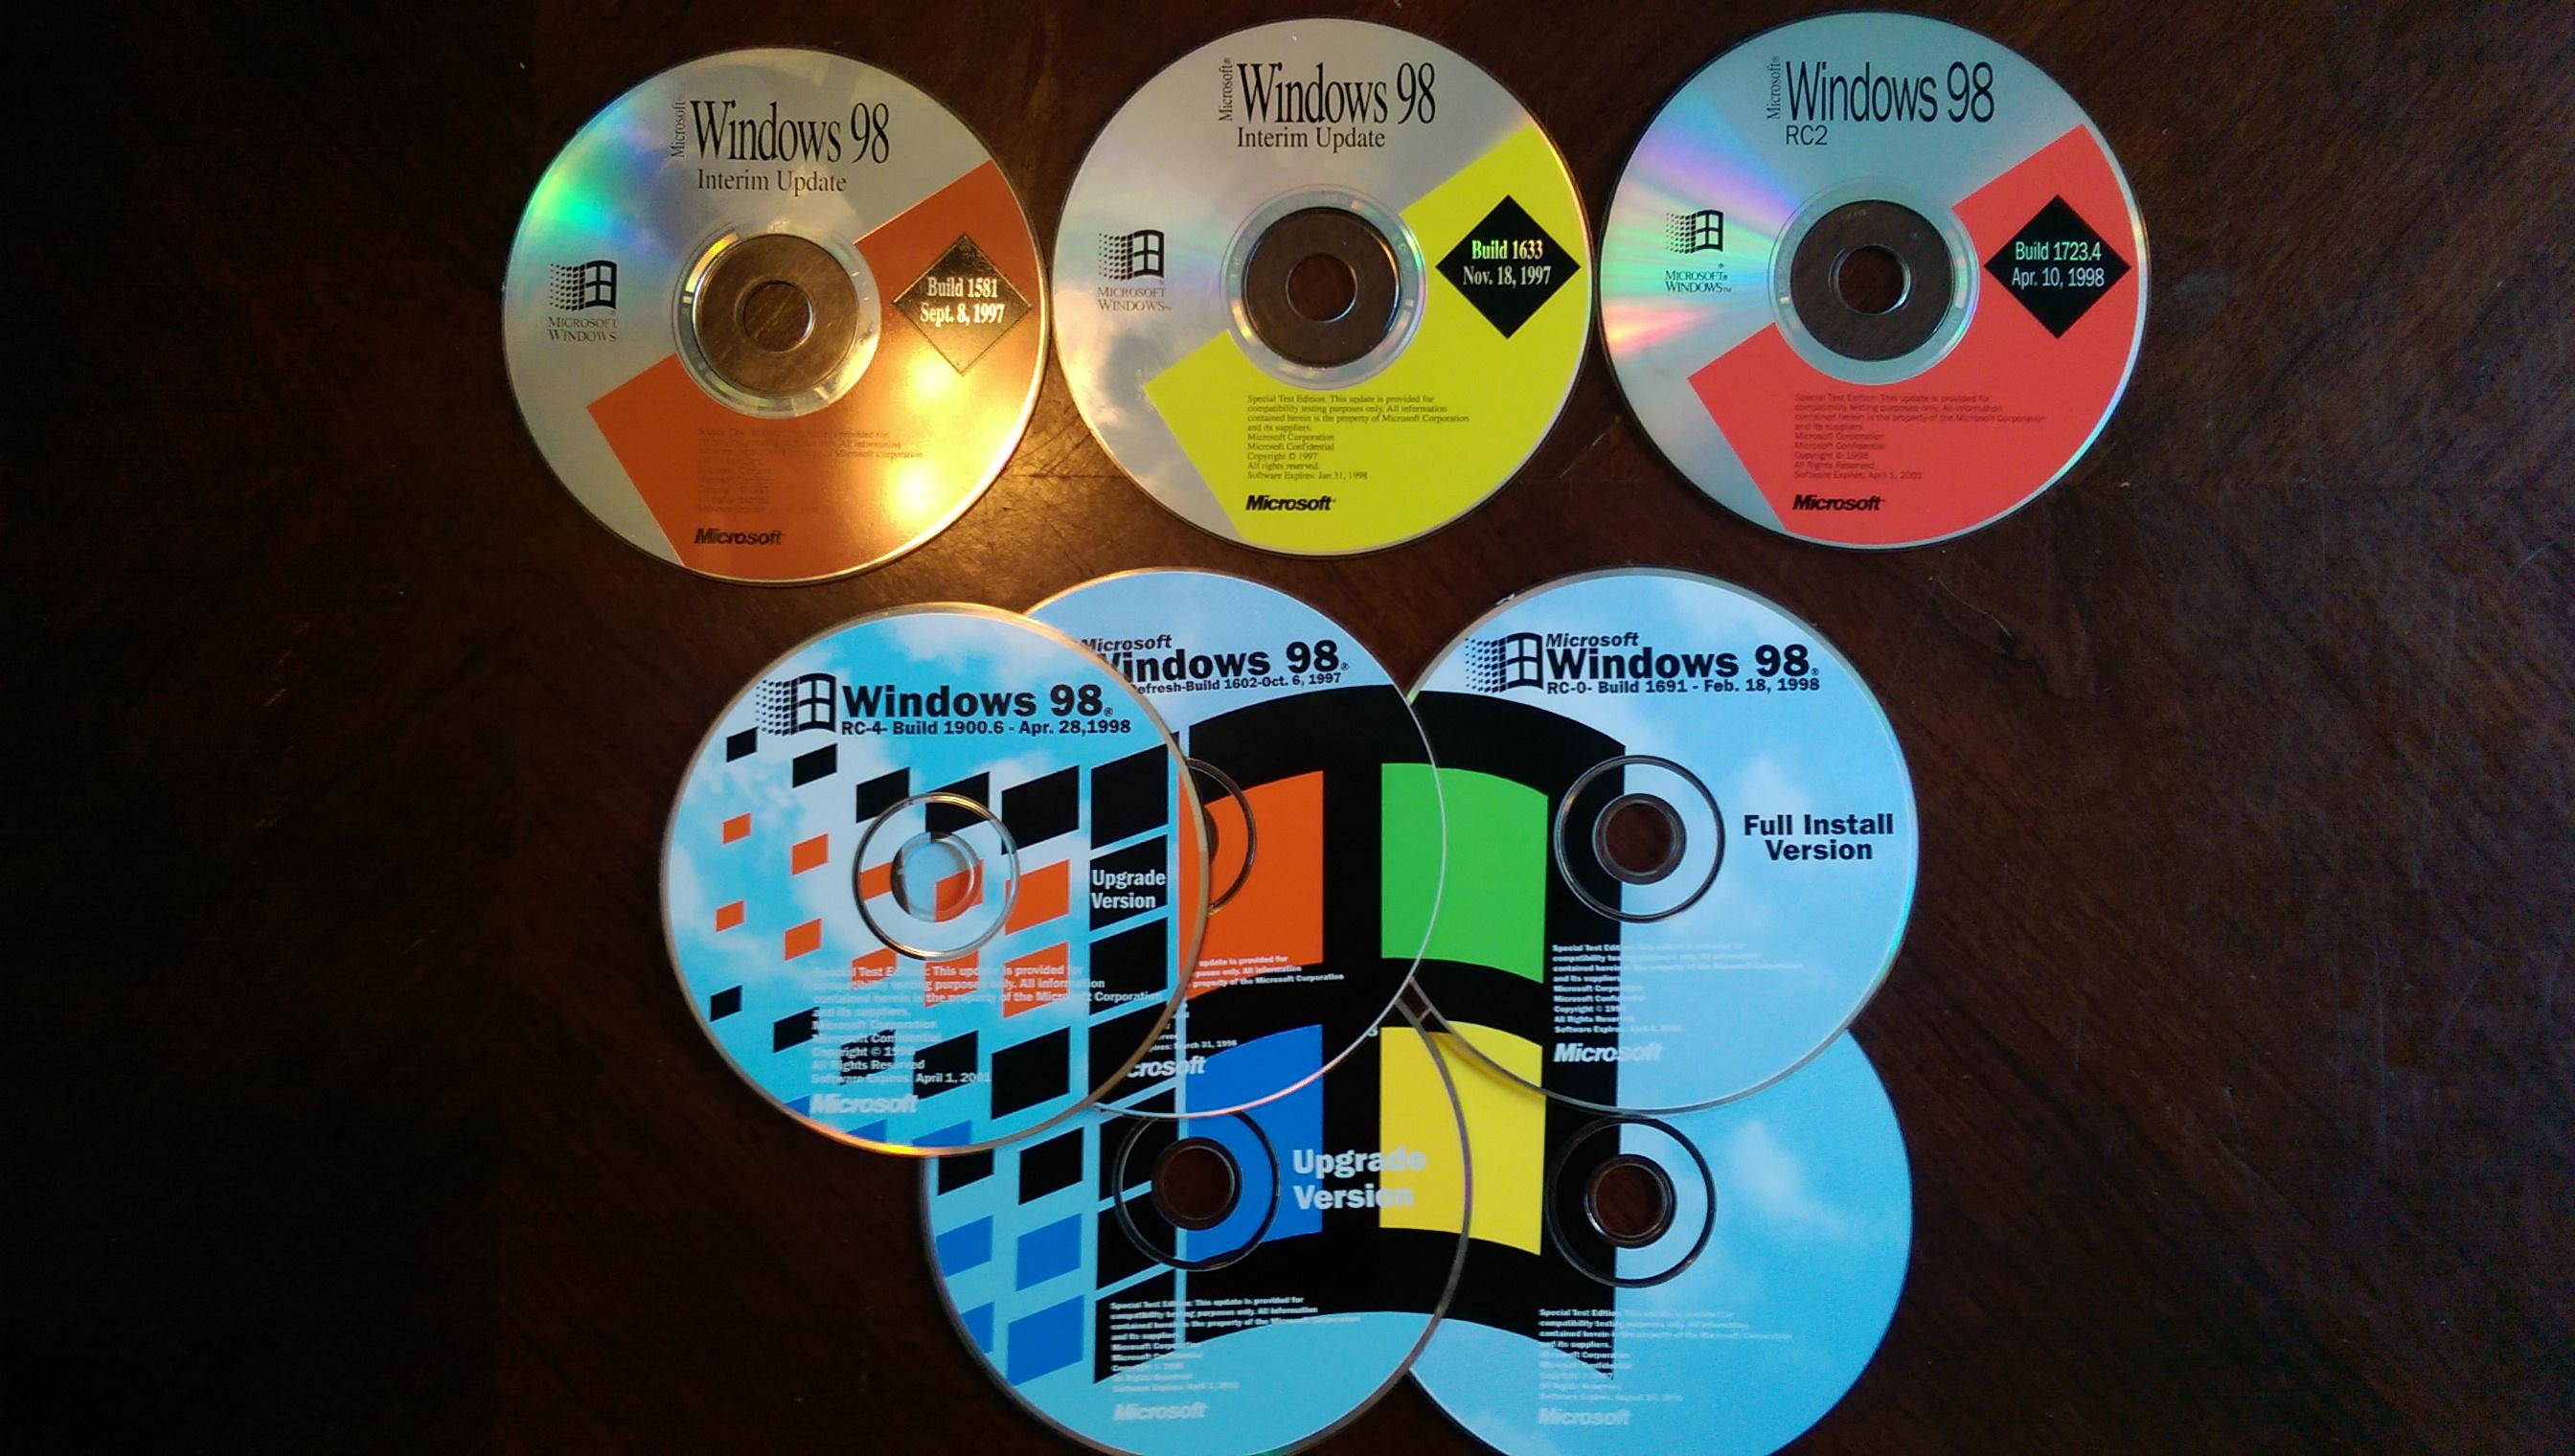 View topic - (Coming Soon) Windows 95 Build 420, 98 build 1633, and